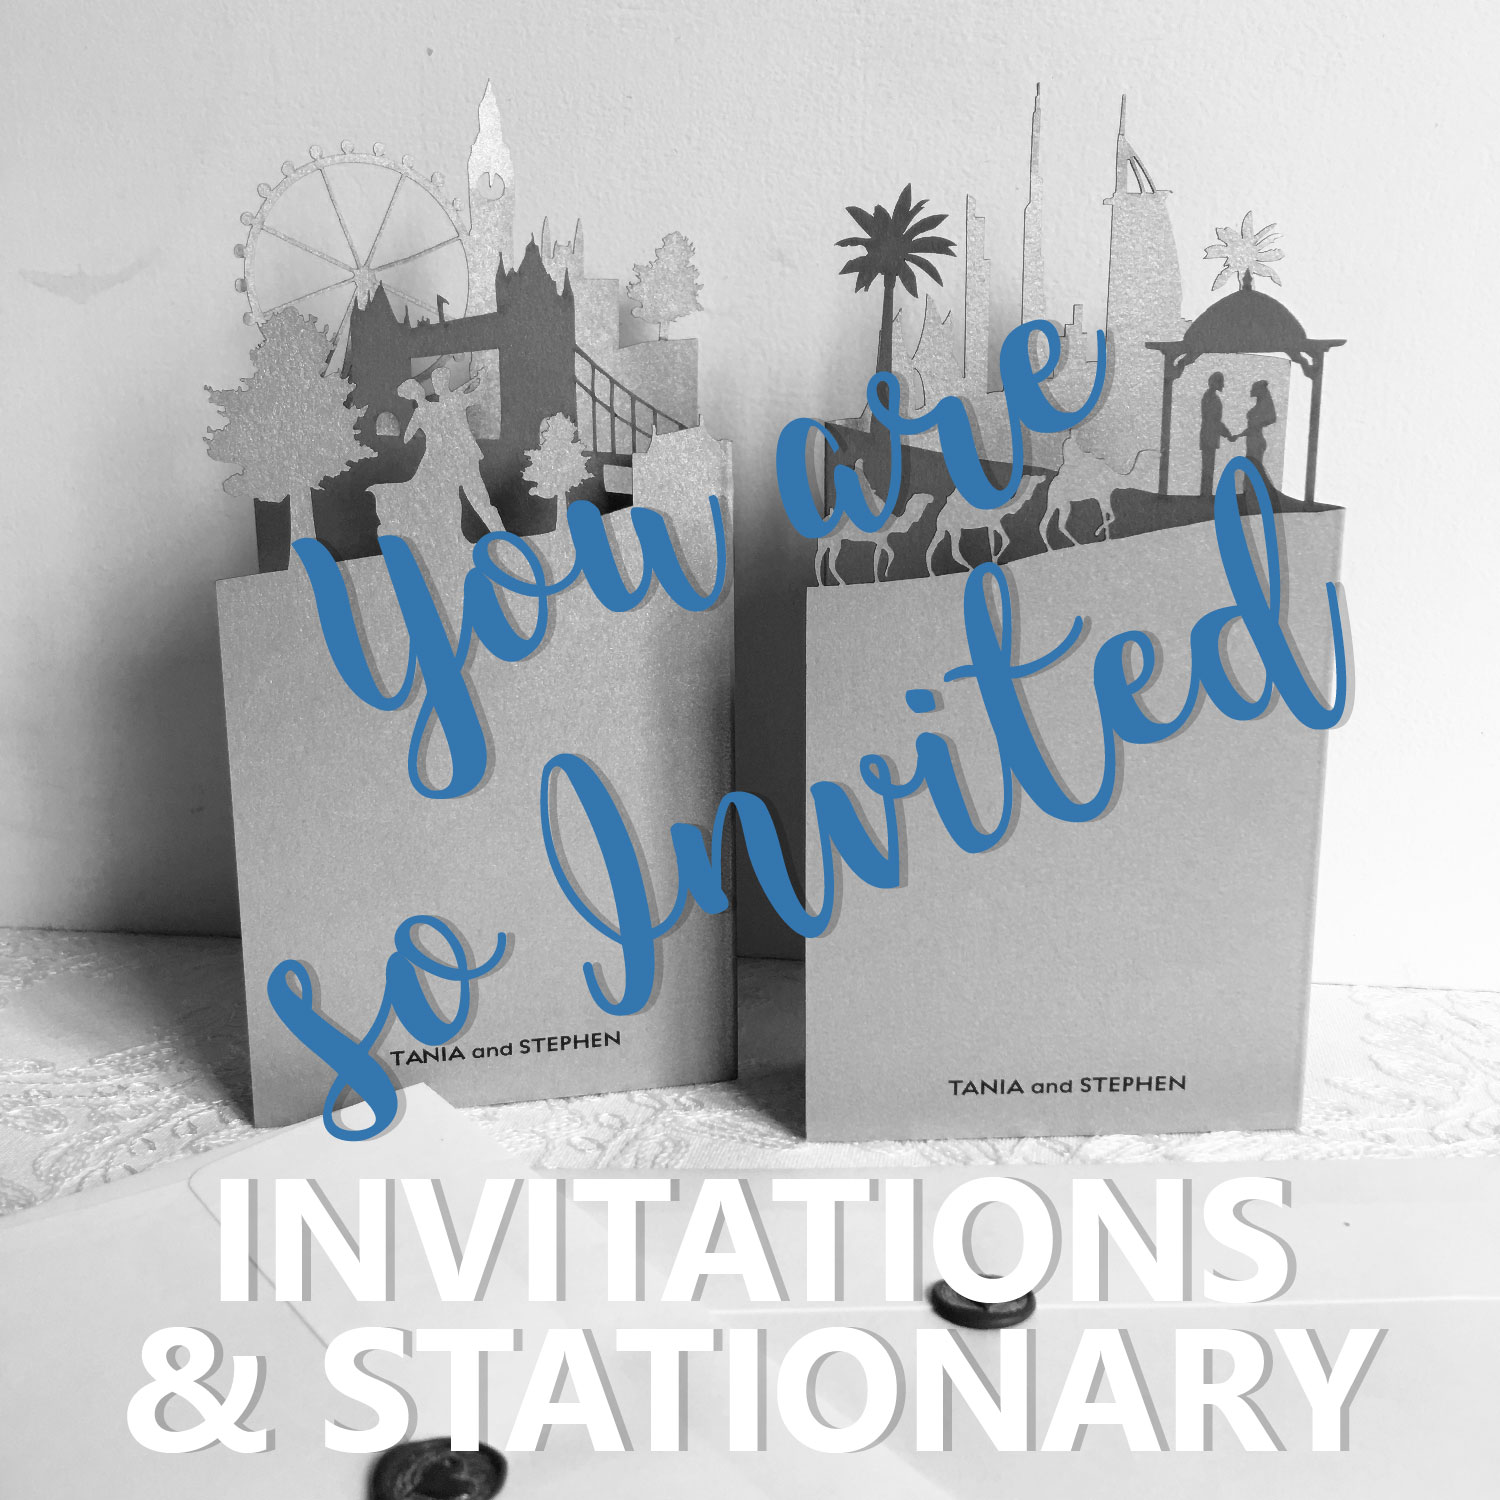 6 INVITATIONS 01 - Invitations & Stationary